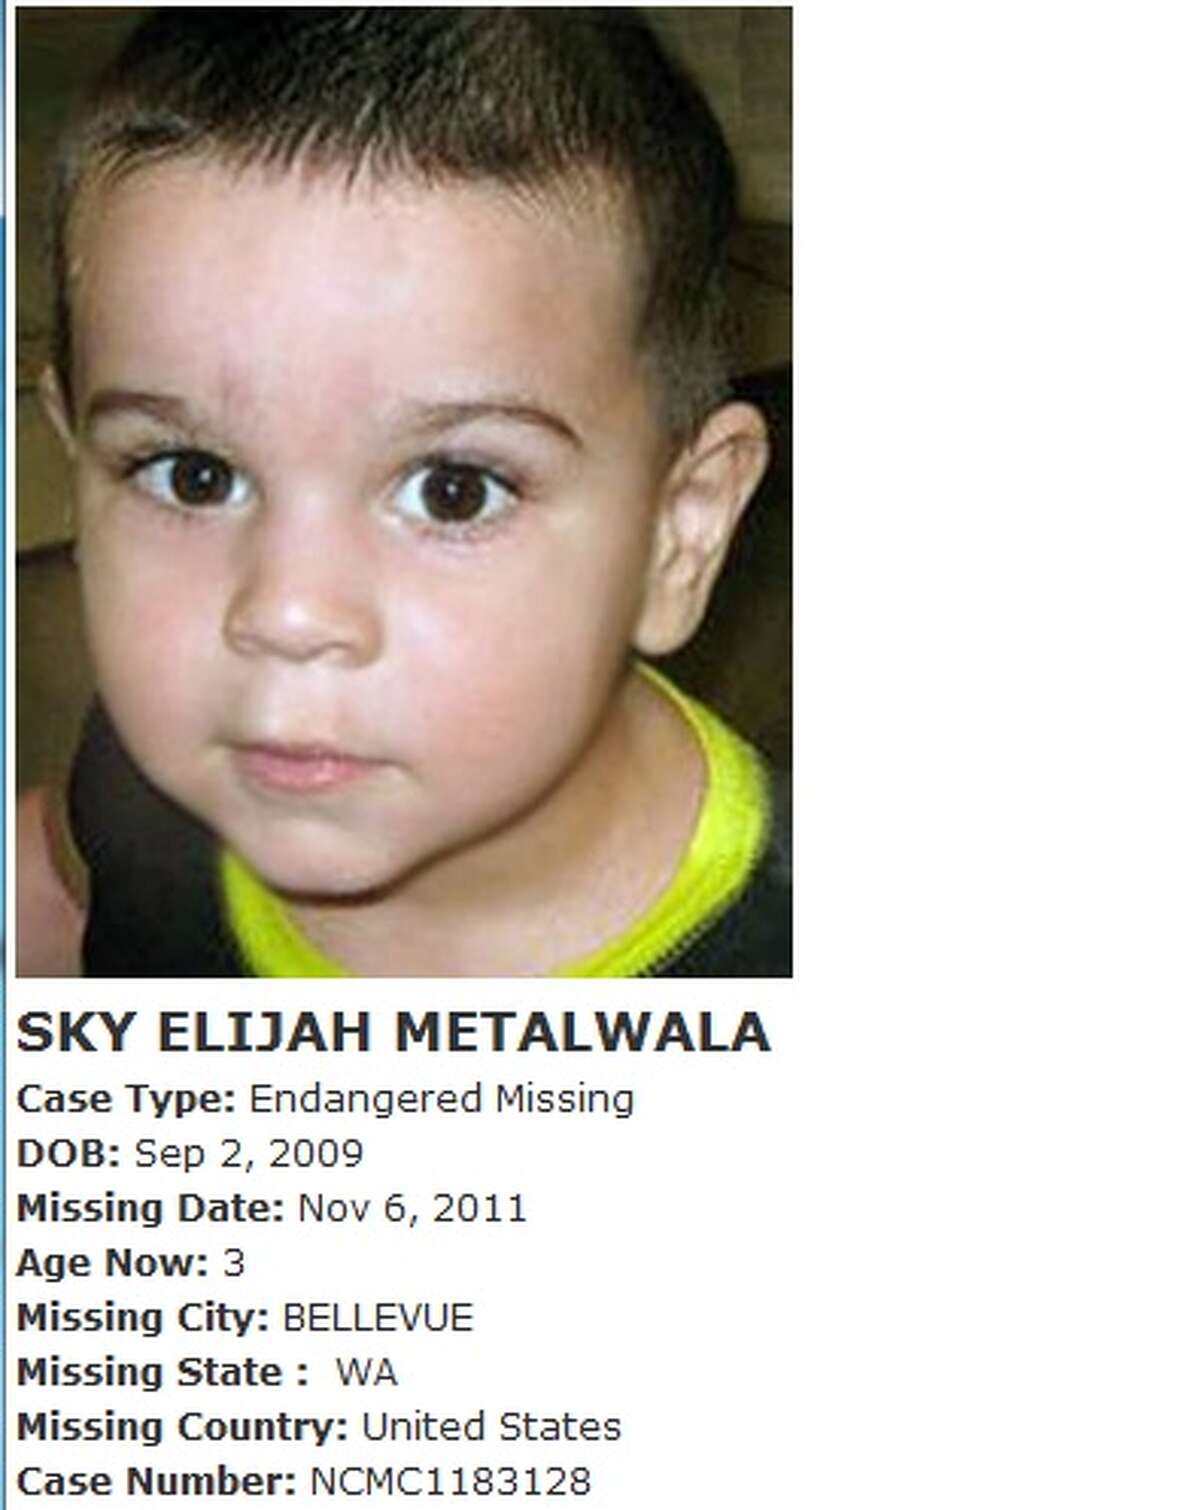 In the majority of solved child-abduction cases, children are abducted by a parent, according to the FBI. While Sky Metalwala's case is still unsolved, his father and his father's attorney, Leslie Clay Terry, have been very vocal about their opinion of Sky's mother's alleged involvement in his disappearance. His mother denies involvement but has not been cooperative with police.Sky Metalwala disappeared in 2011 near Bellevue when he was 2 years old. His mother, Julia Biryukova, told police that she and her two children left their home in Redmond to take Sky to a hospital in Bellevue. She stated that on the way there, they ran out of gas in the 2600 block of 112th Avenue Northeast in Bellevue and that she took her 4-year-old daughter with her to the nearest gas station (about a mile away) while leaving Sky in the car. Biryukova said they returned to the car to find him gone and she then called police. When police arrived, they concluded there was nothing wrong with the car and that it was not out of gas. Although Biryukova had gone to the gas station, she had not purchased gas there and there was no gas can present at the scene. A search of the area resulted in no clues as to the whereabouts of Sky.There has been no sign of Sky since, and no arrests have been made or charges filed.